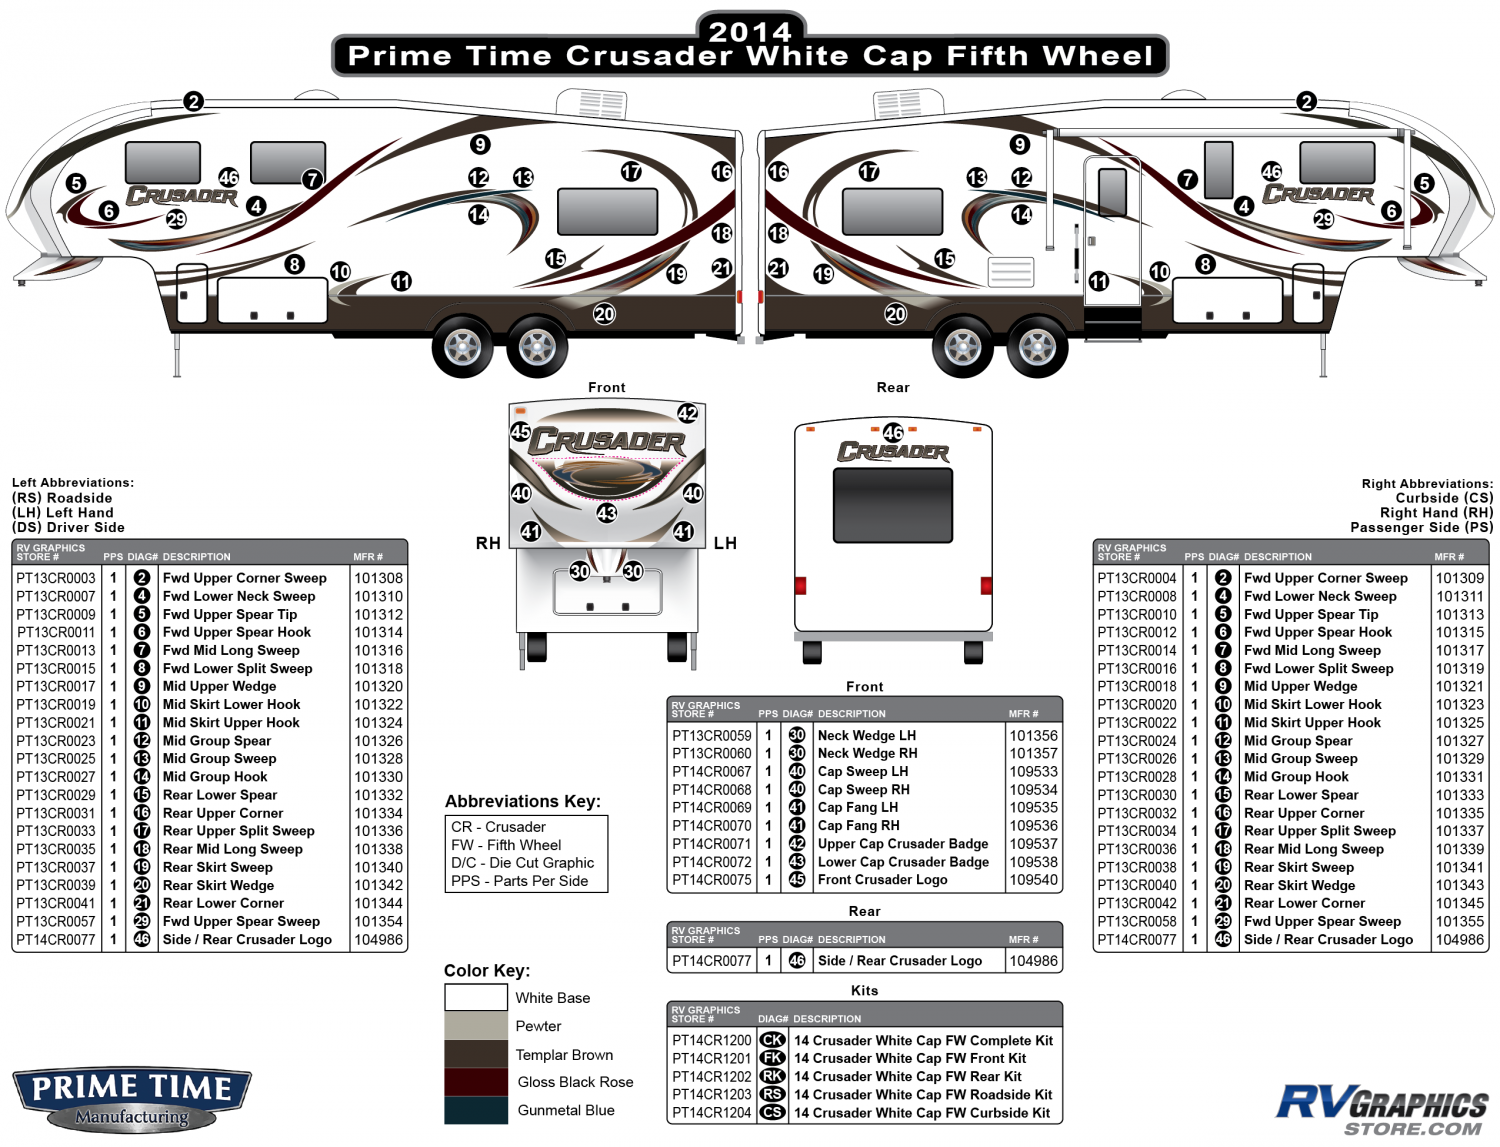 Crusader - 2014 Crusader FW-Fifth Wheel White Cap